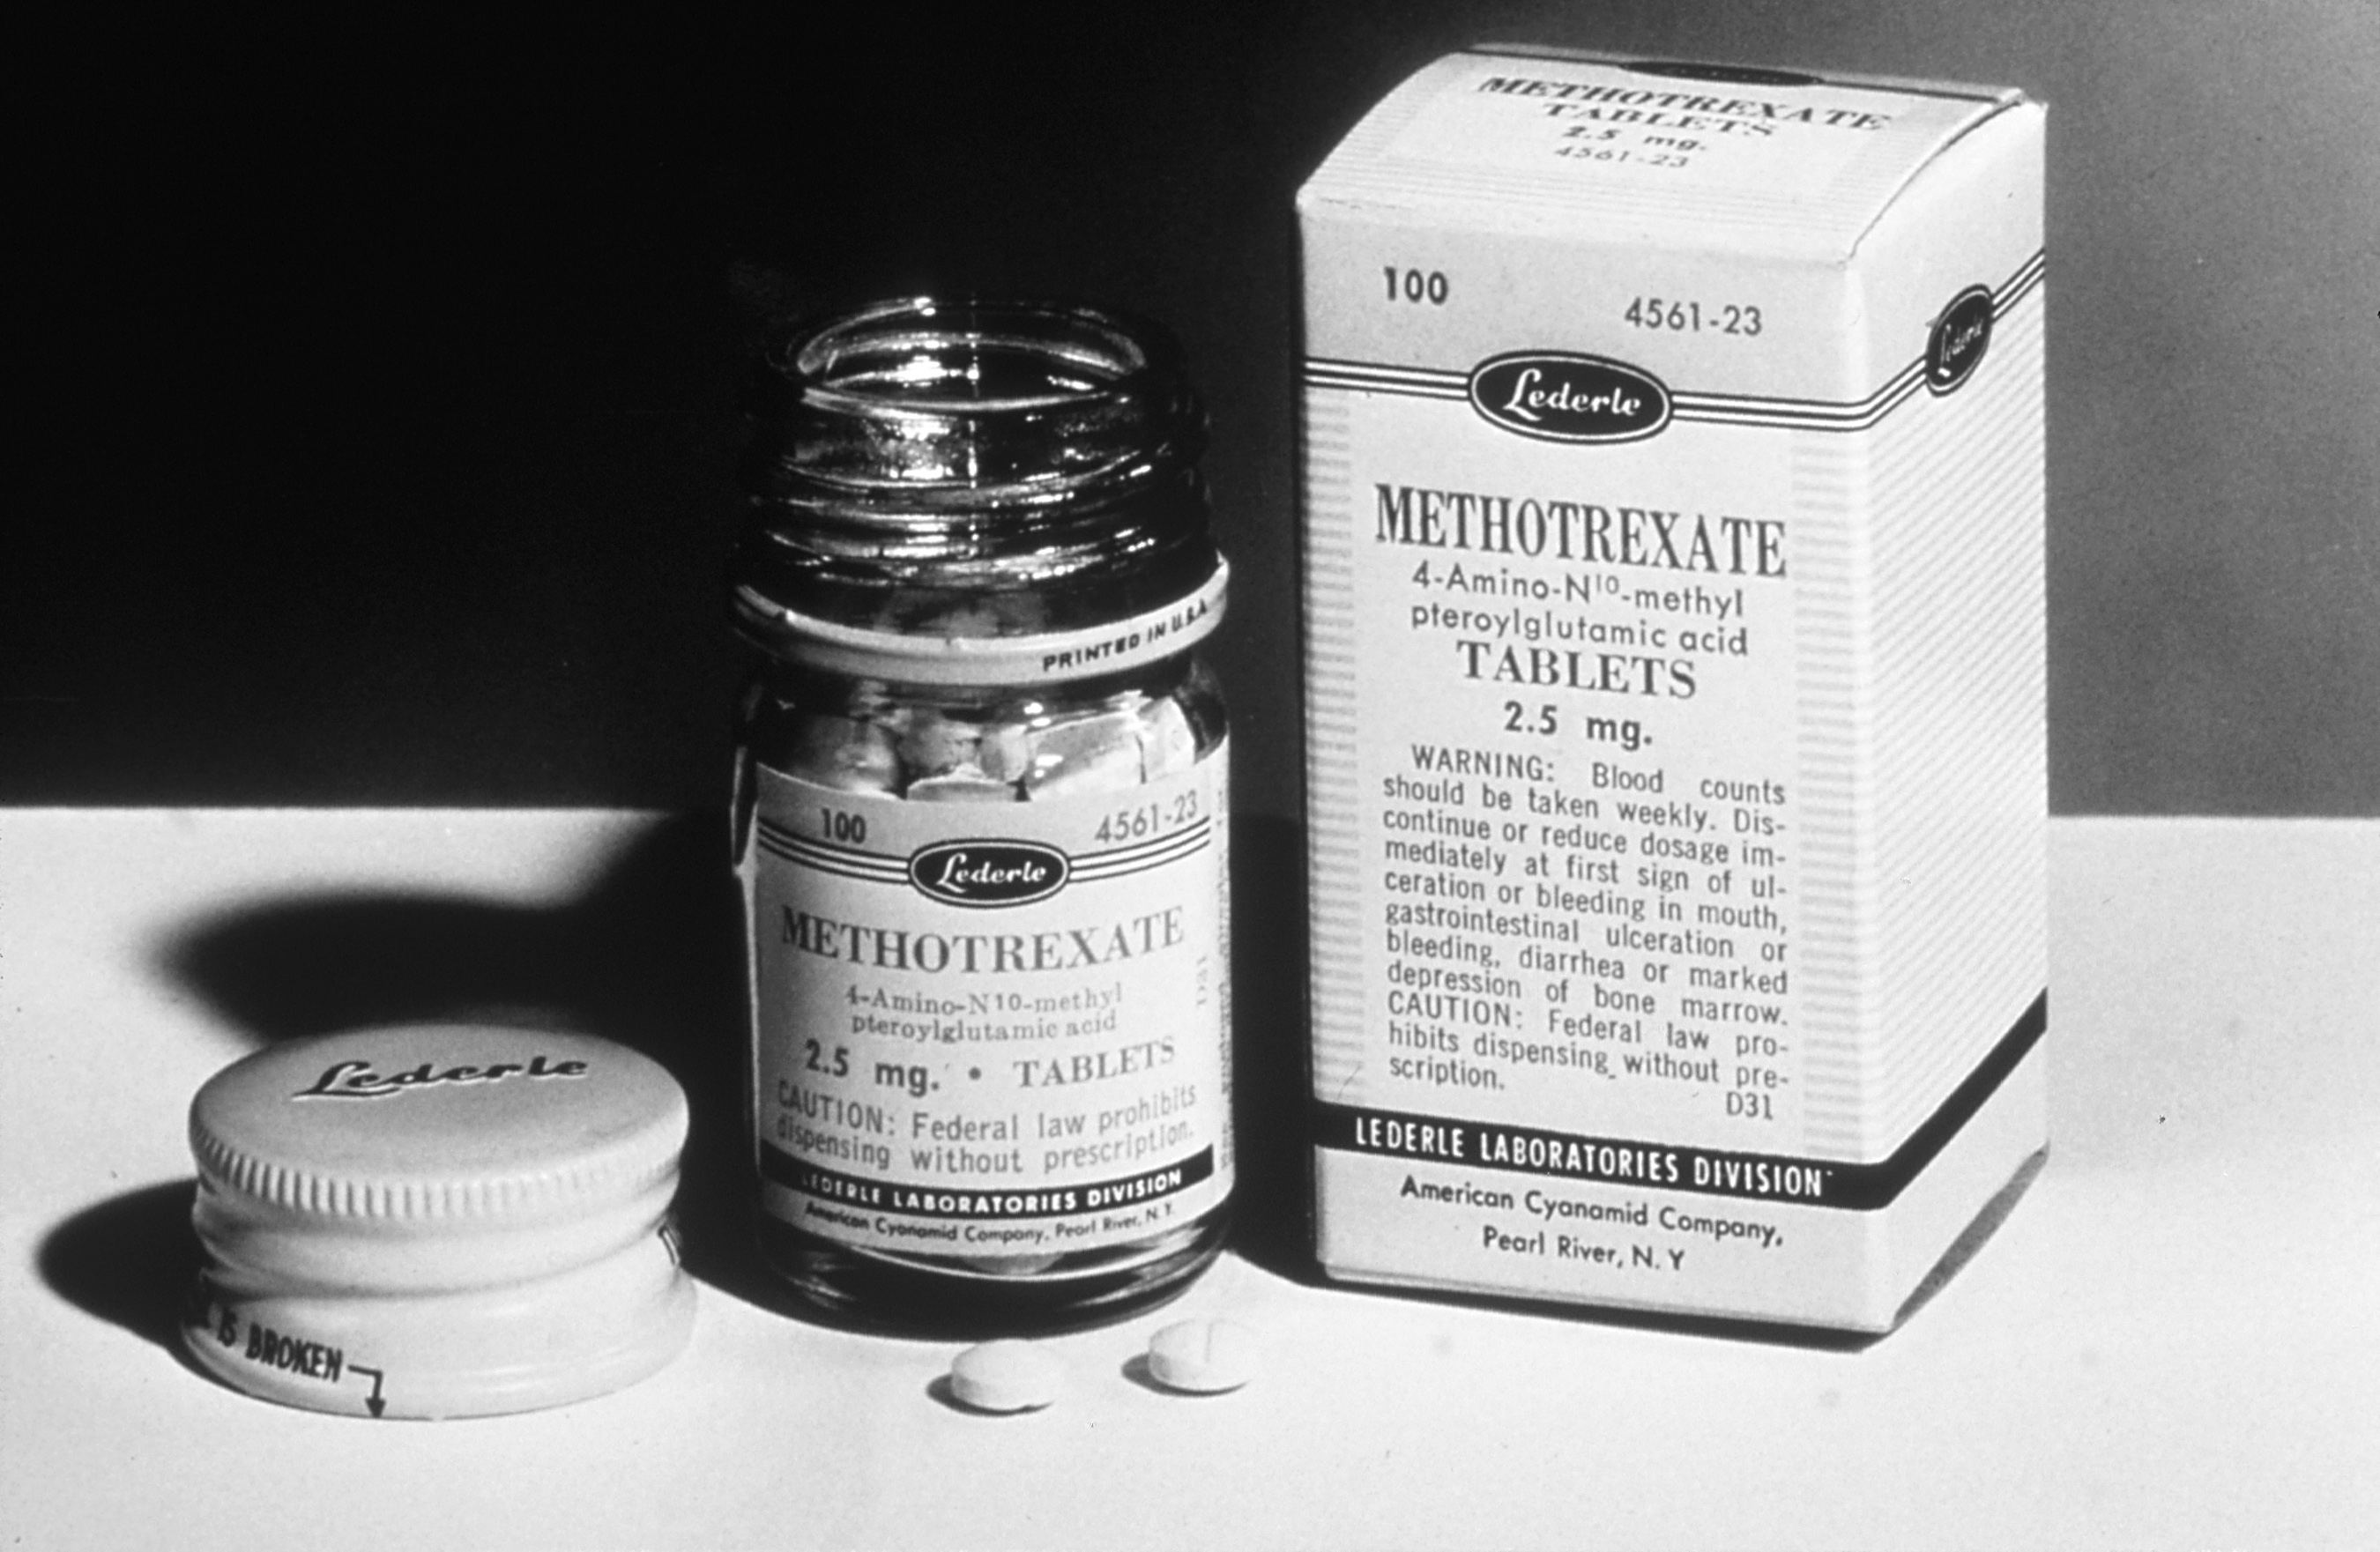 Methotrexate packaging. By Unknown photographer/artist. Copyright: National Cancer Institute, an agency part of the National Institutes of Health.